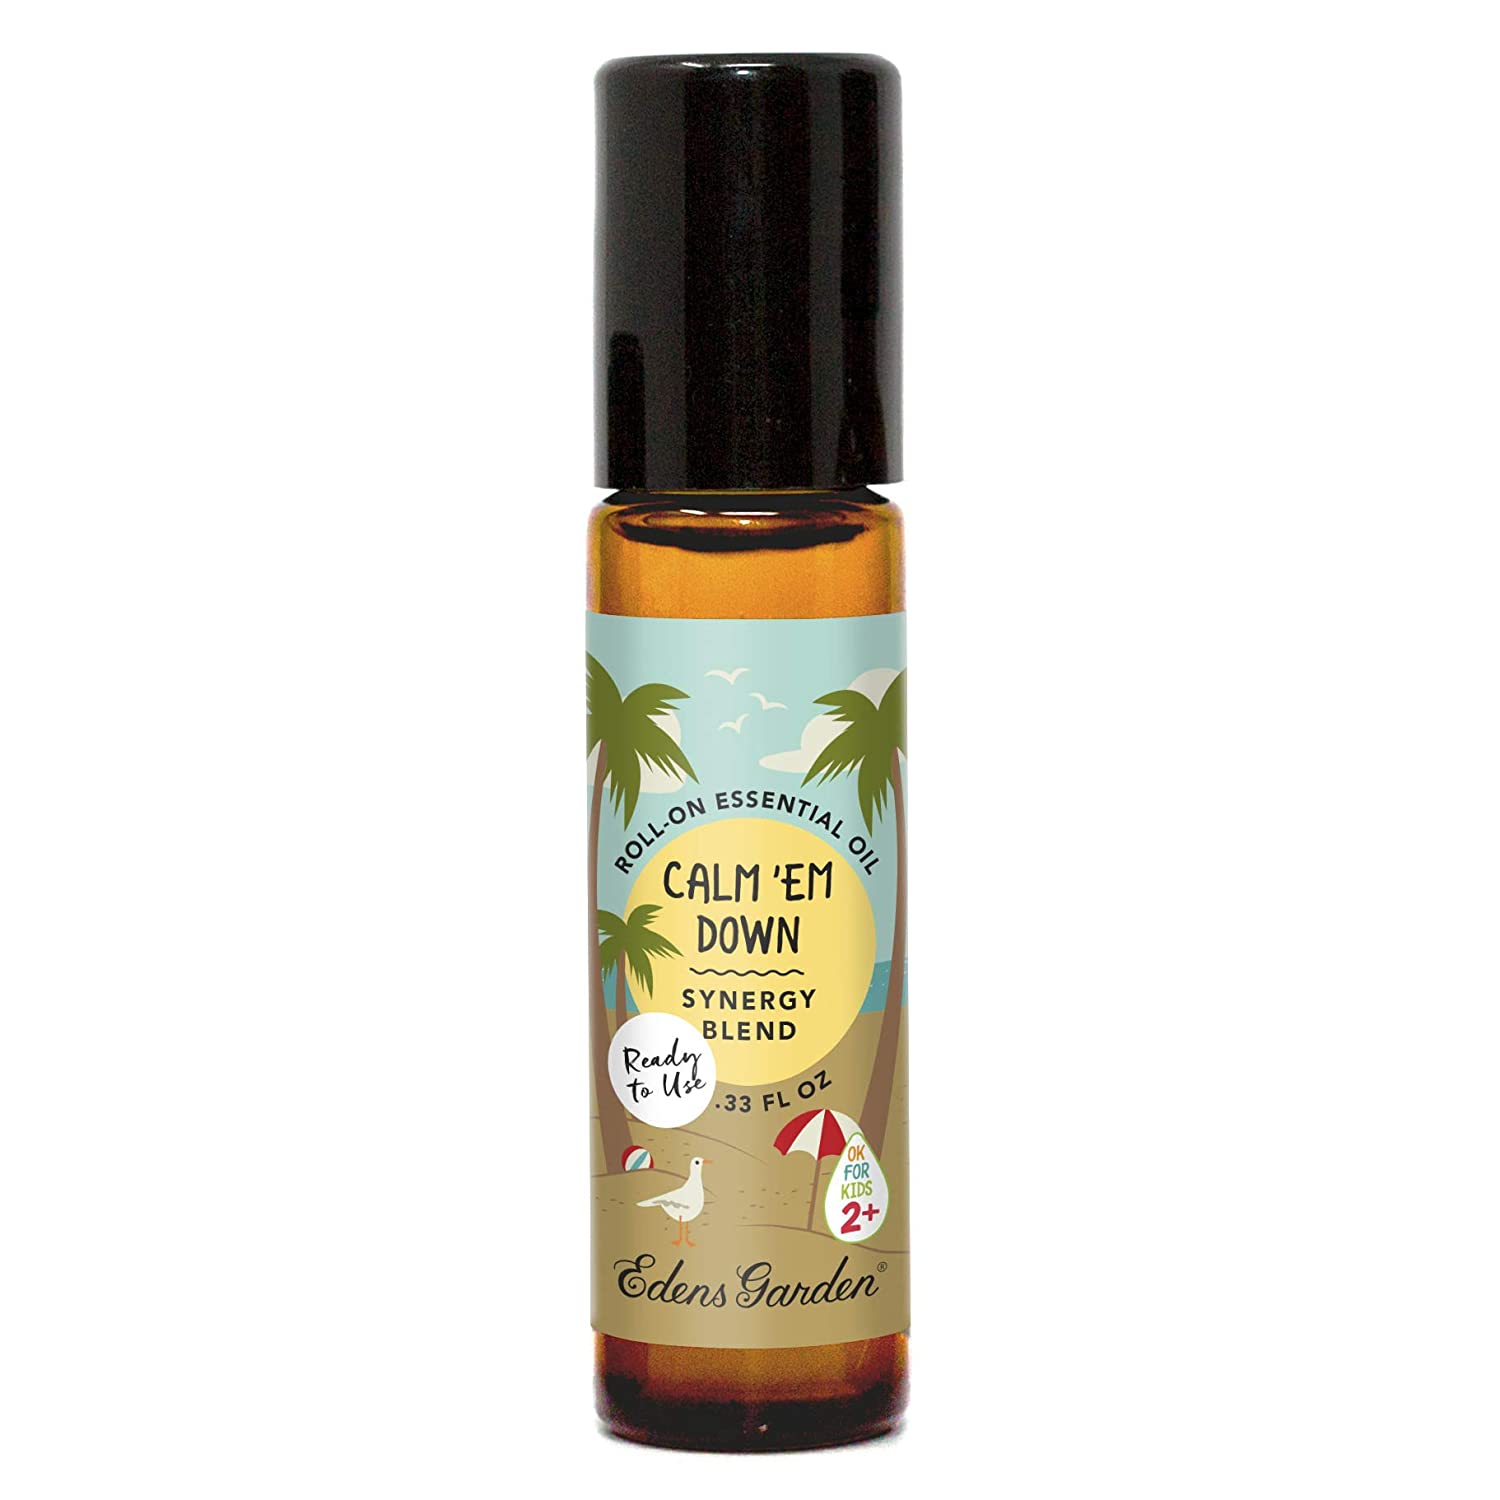 "Edens Garden Calm 'Em Down""OK For Kids"" Essential Oil Synergy Blend, 100% Pure Therapeutic Grade (Child Safe 2+, Pre-Diluted & Ready To Use- Anxiety & Stress), 10 ml Roll-On"